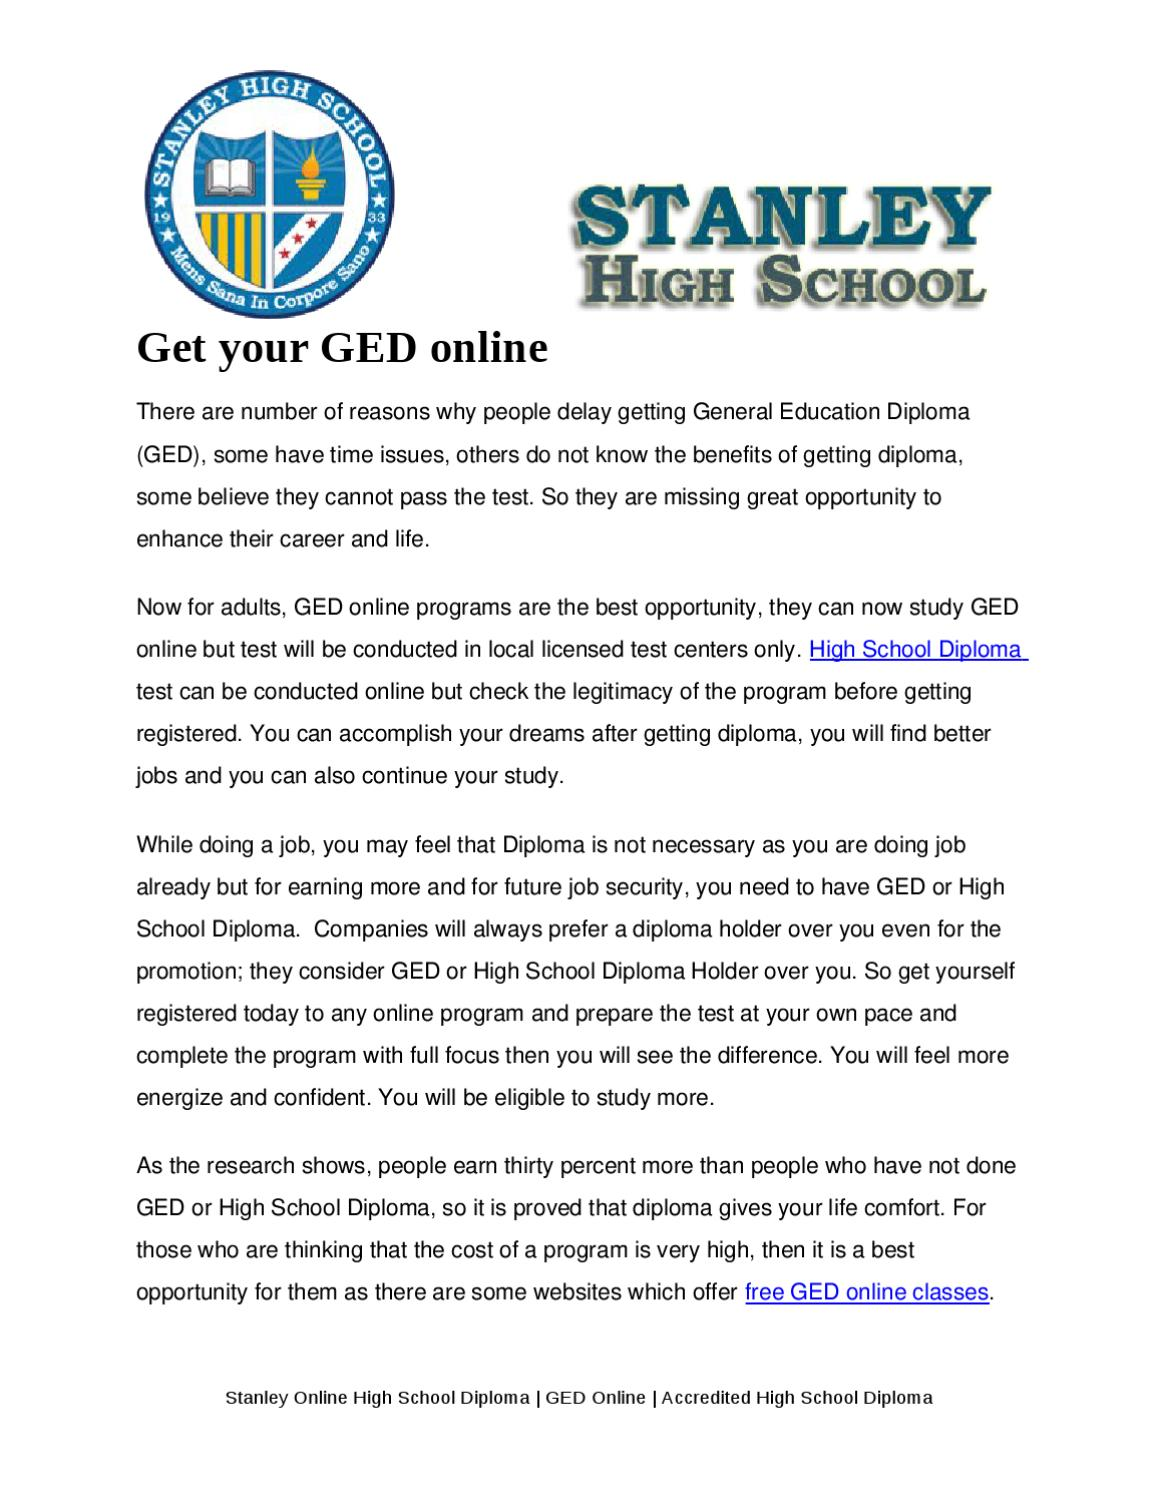 Get Your Ged Online >> Get Your Ged Online By Robert Stanley Issuu